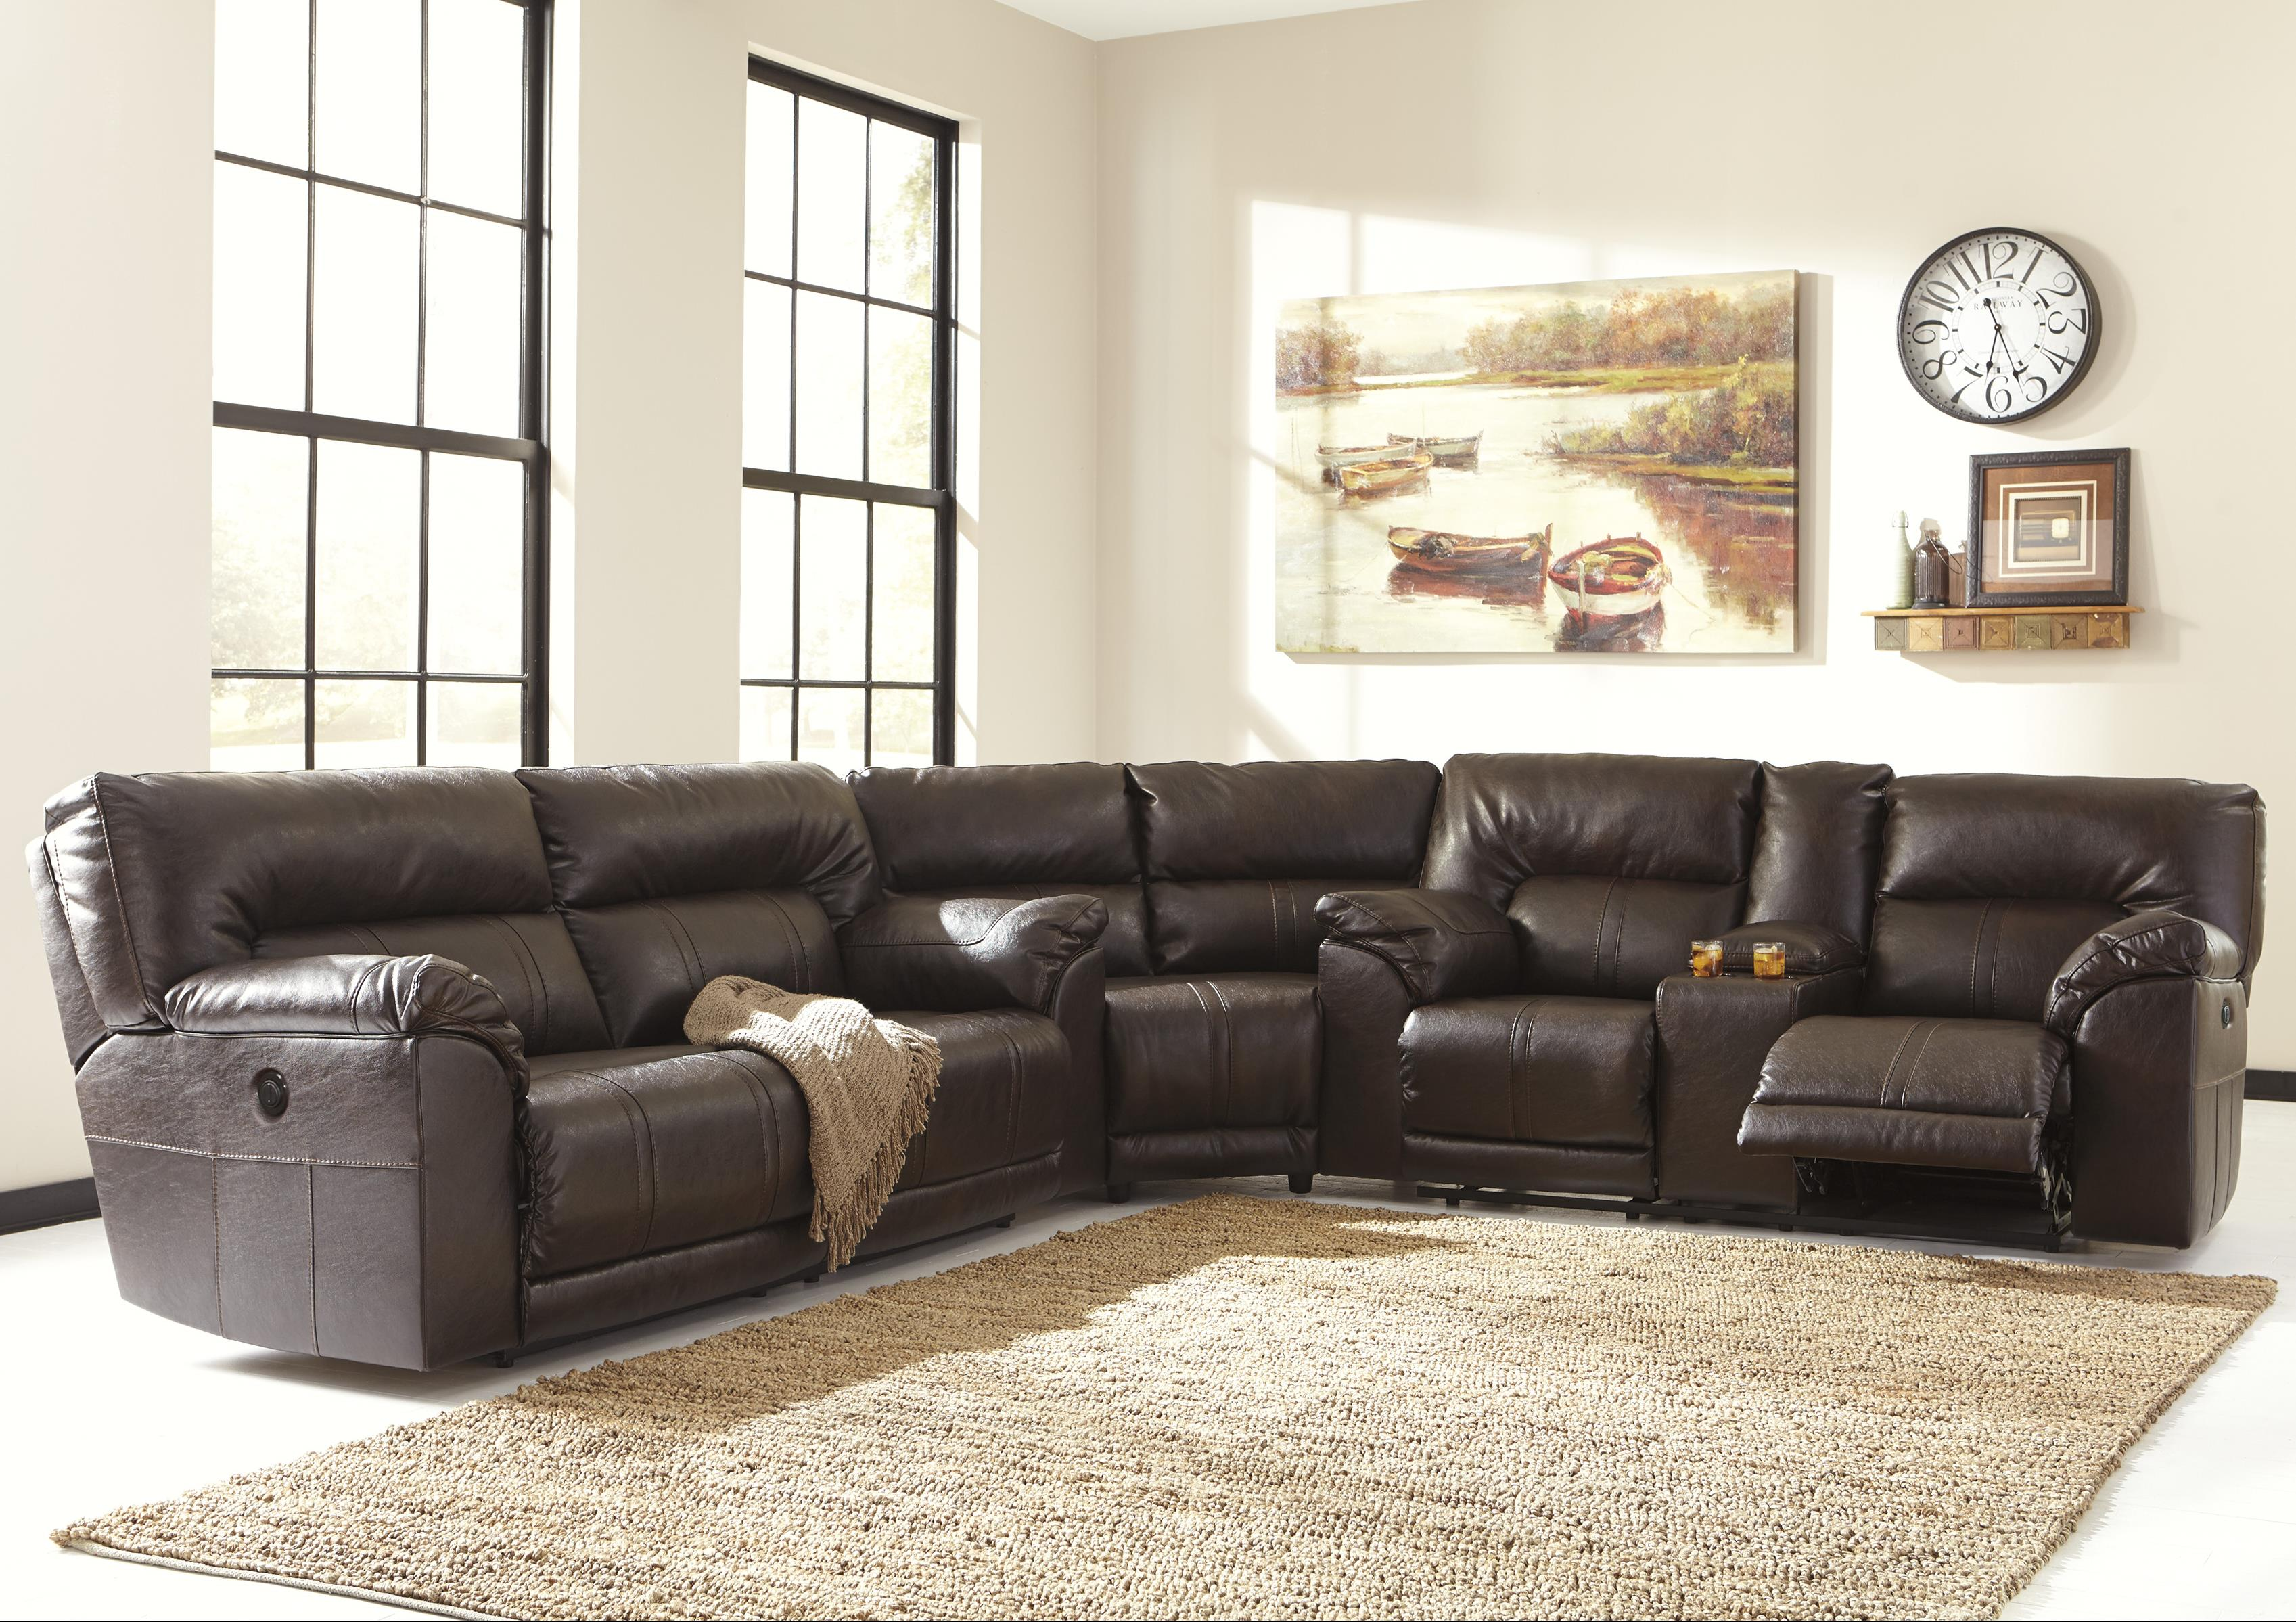 Benchcraft Barrettsville DuraBlend® 3-Piece Power Reclining Sectional - Item Number: 4730147+77+96